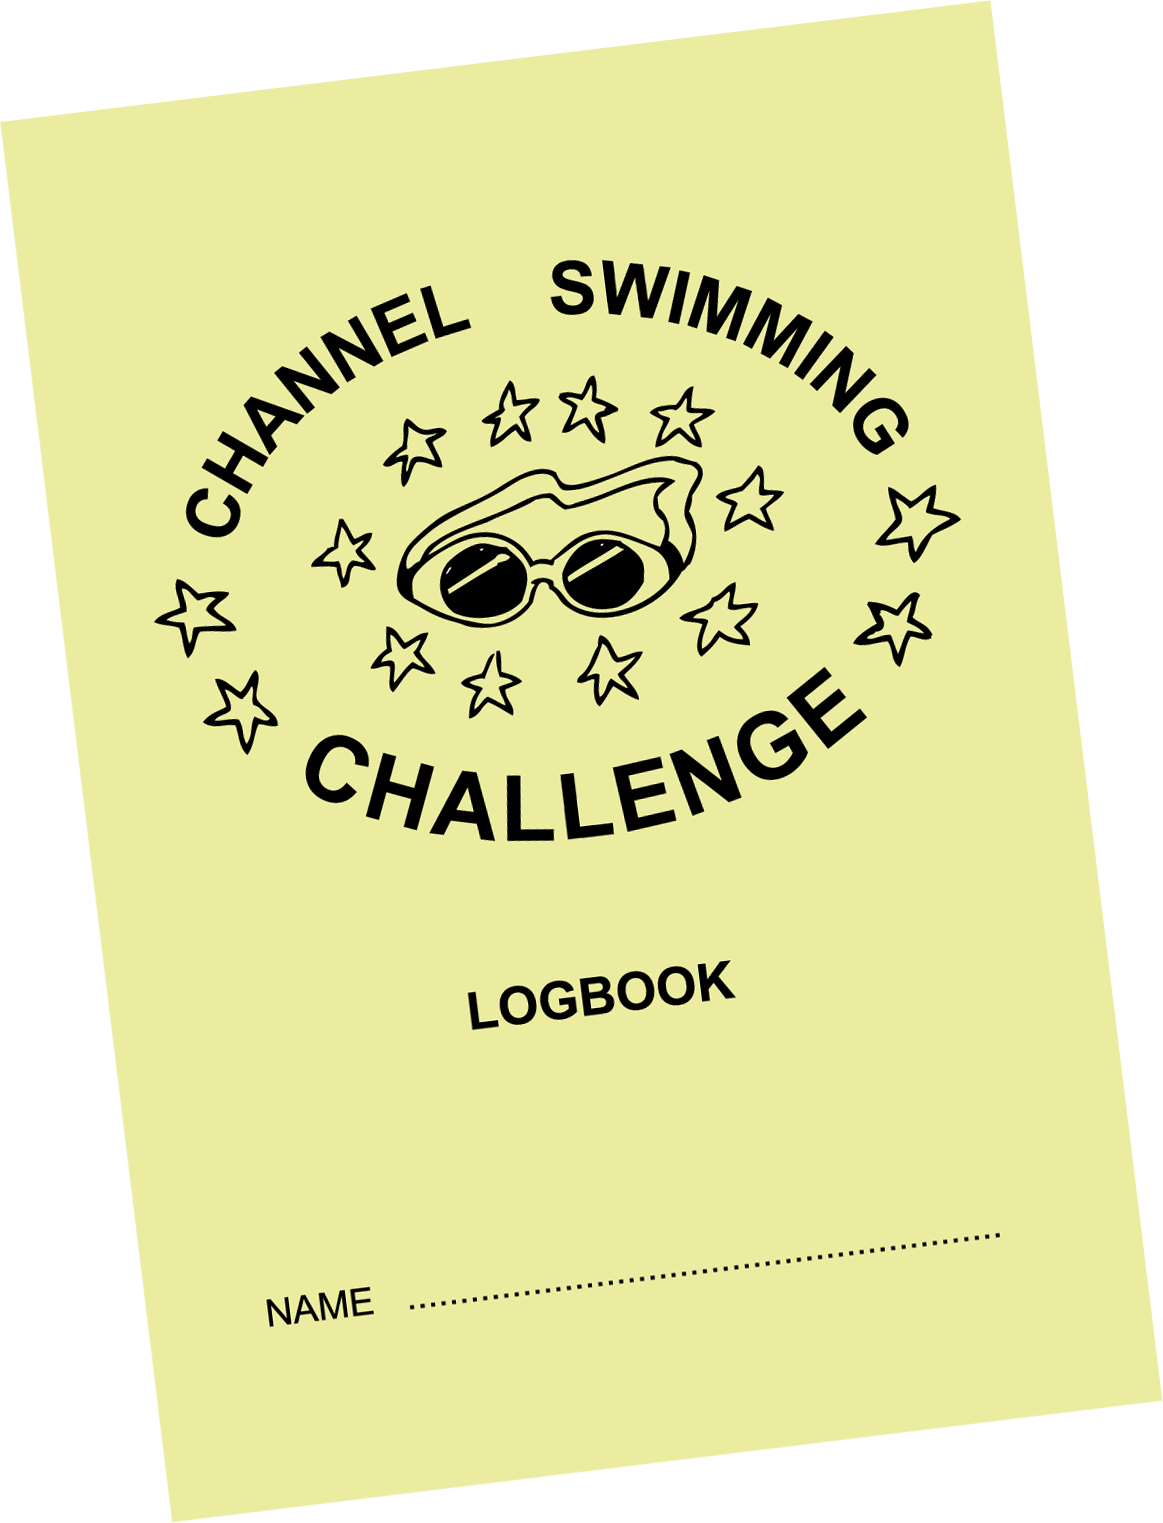 Channel Swimming Challenge Logbook